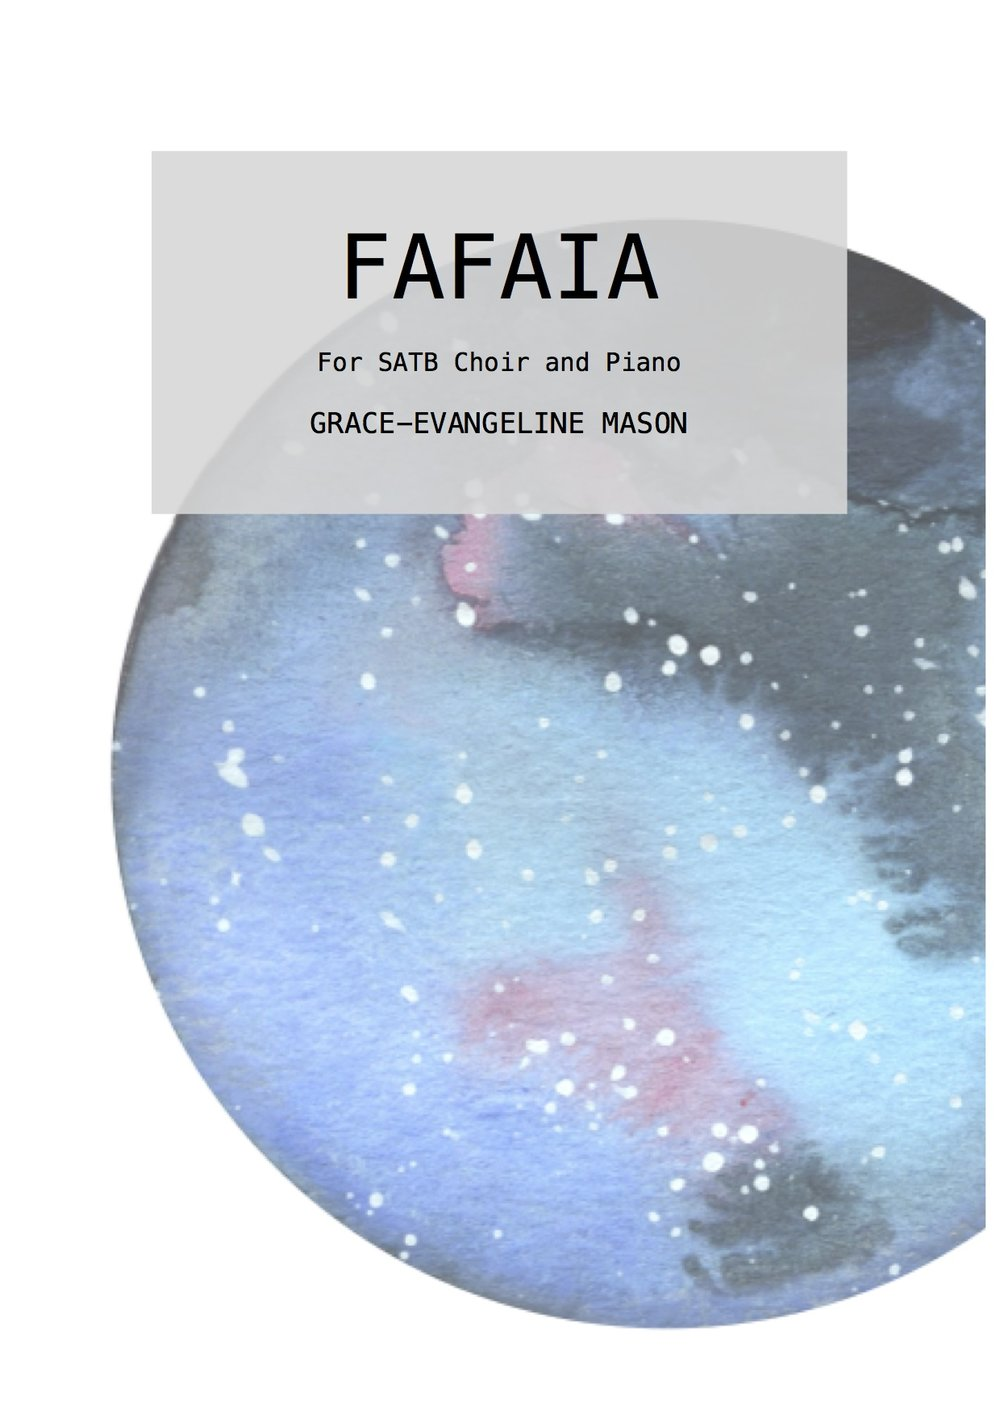 'FAFAIA' (2018) - For Choir and PianoDuration: 3'Written for the LSO Community Choir through the LSO Discovery Panufnik Composers Scheme, generously supported by Helen Hamlyn and the Helen Hamlyn Trust. First Performed at LSO St Luke's, London, 16th November 2018.'Fafaia' (2018) for choir and piano is a setting of the poem of the same name by the World War I poet, Rupert Brooke. Known for his somewhat idealistic portrayals of World War I, Brooke's poem is simple and reflective, which he wrote when he was in Saanapu in November 1913. It can be interpreted to be about shared experiences, however fleeting, befitting to both war comrades as well as wider human relationships. ©G.E.M.2018©Cover Image: 'Fafaia' Painting by Grace-Evangeline Mason 2018